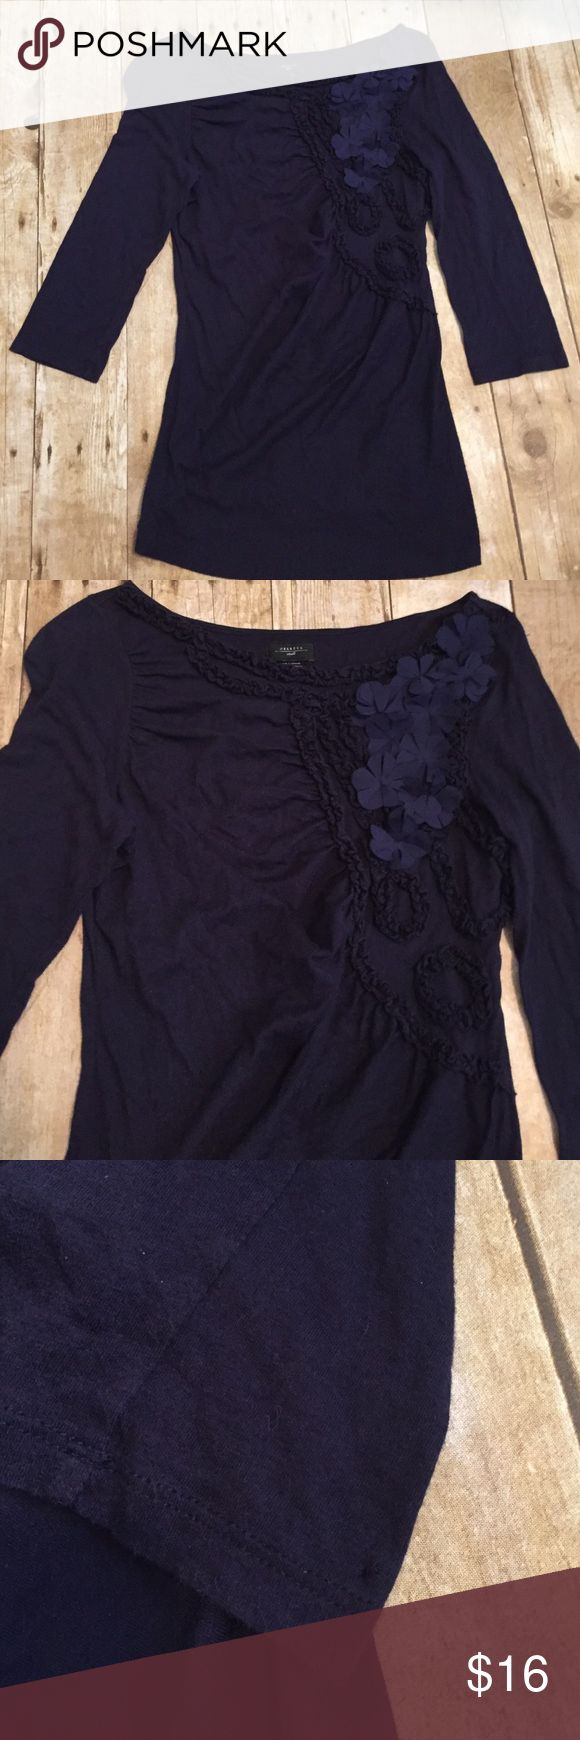 Anthropologie sz small deletta top Navy top with flowers small pin poles from where the tag was located on the sleeve.  Otherwise good condition. Anthropologie Tops Blouses